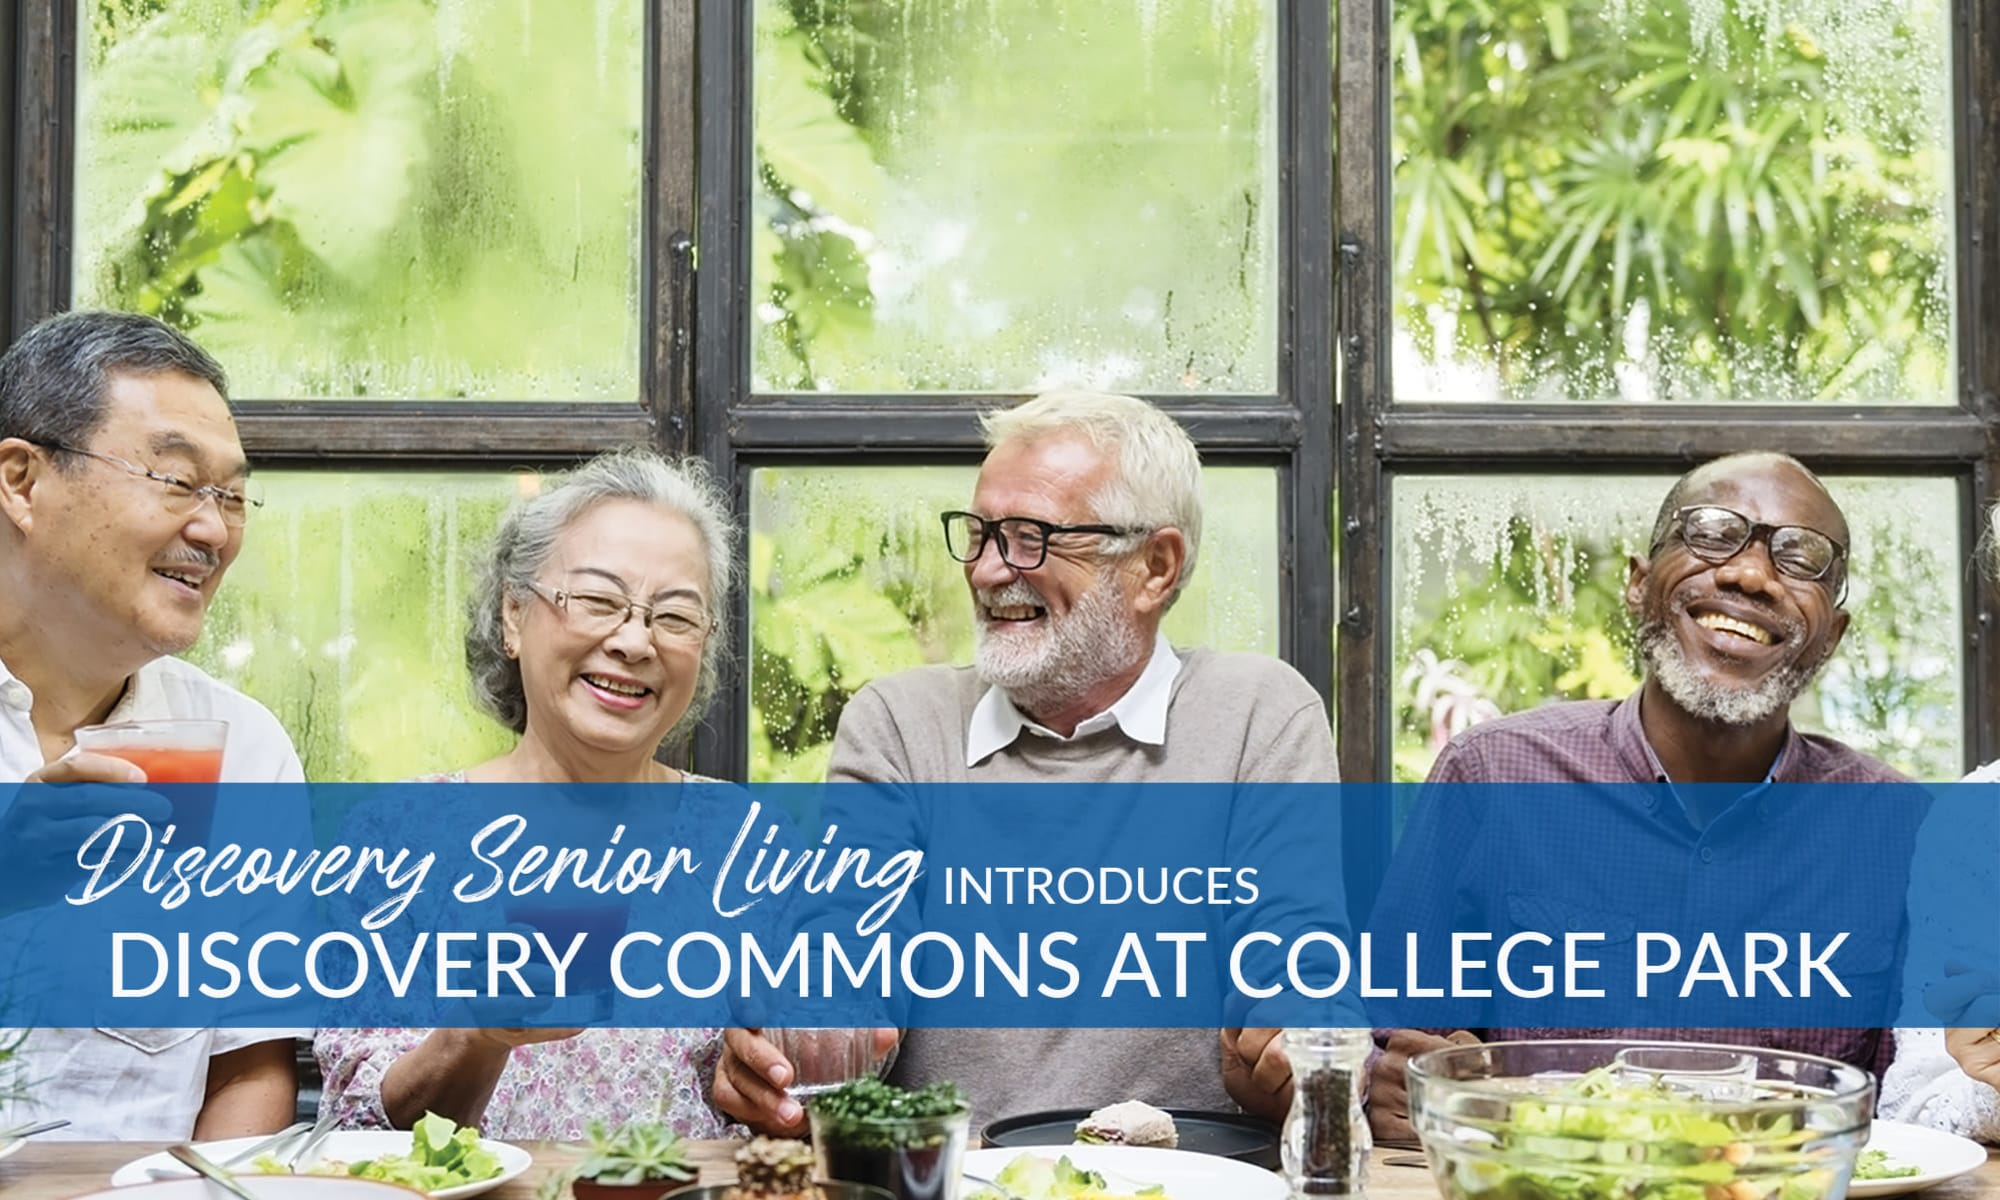 Senior living at Discovery Commons At College Park in Indianapolis, Indiana